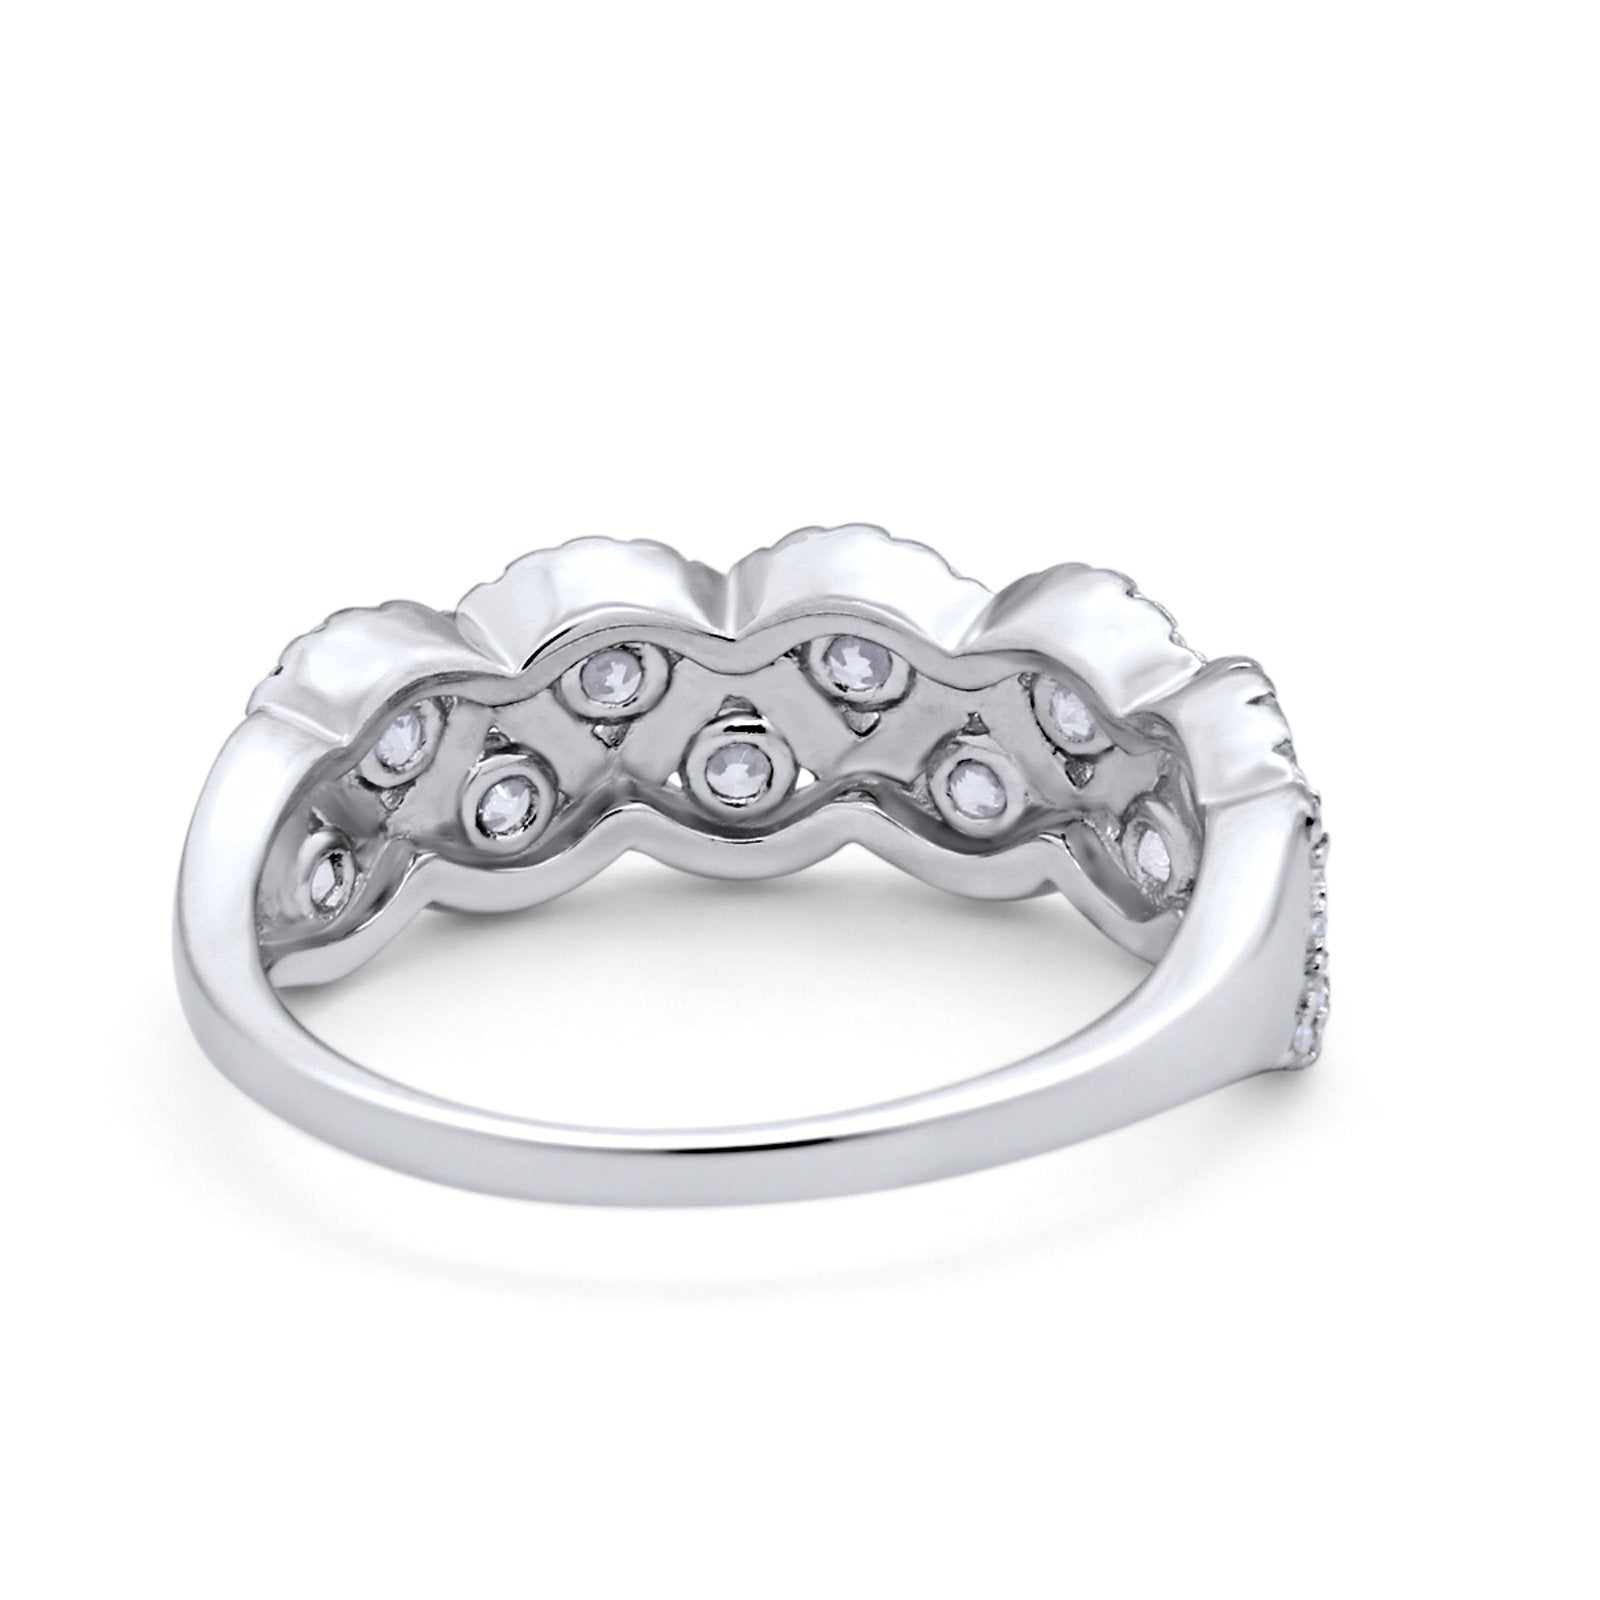 Weave Crisscross Infinity Ring Eternity Round Simulated CZ 925 Sterling Silver